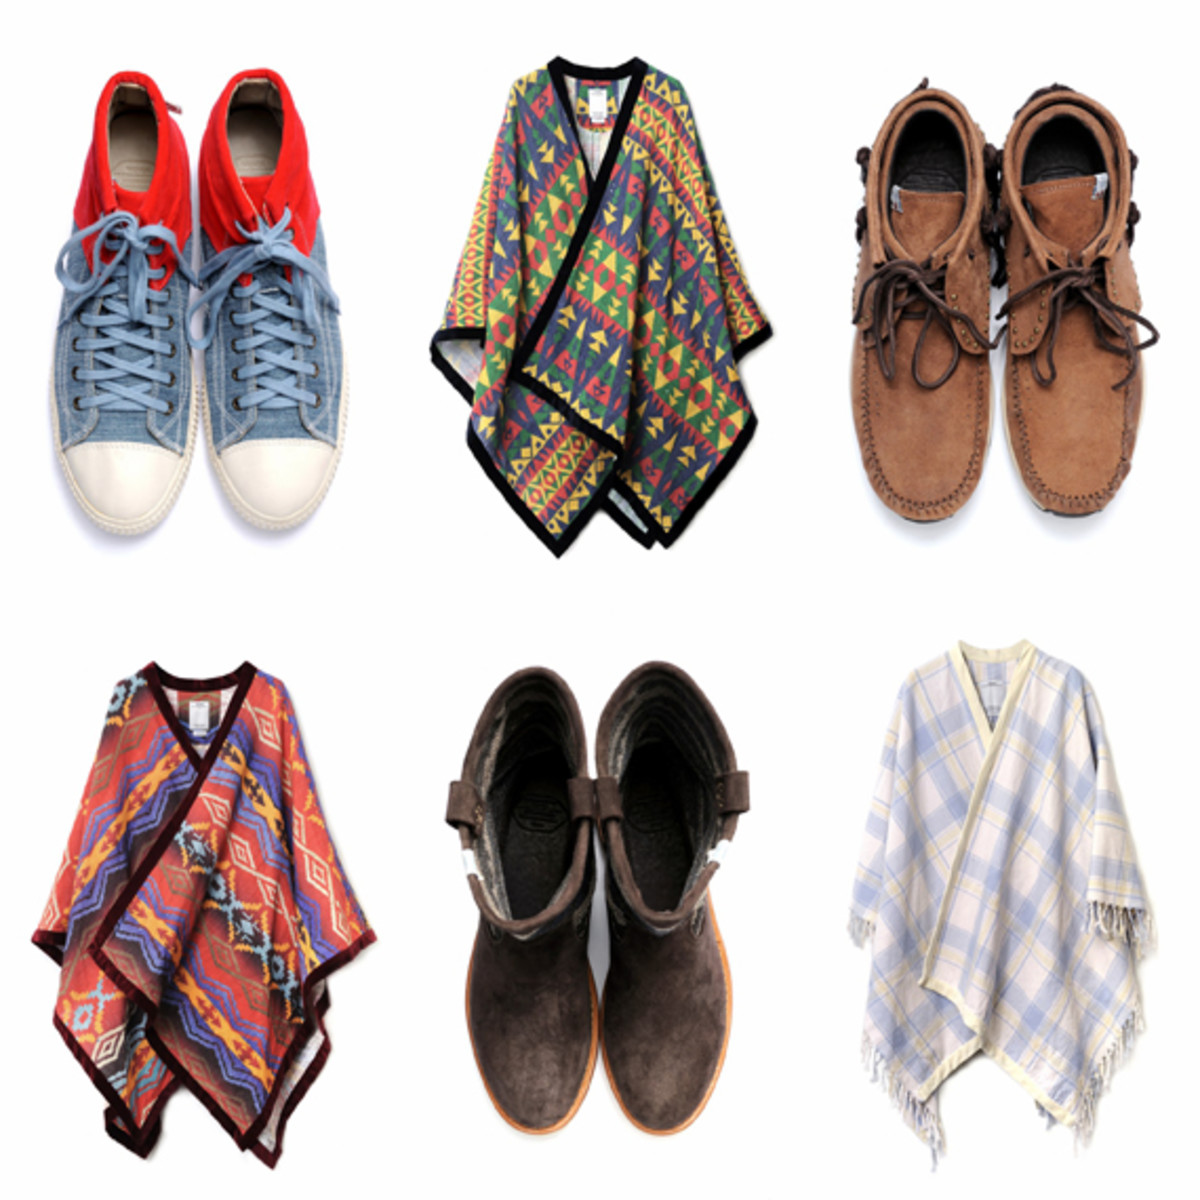 visvim-Womens-Spring-Summer-2011-Collection